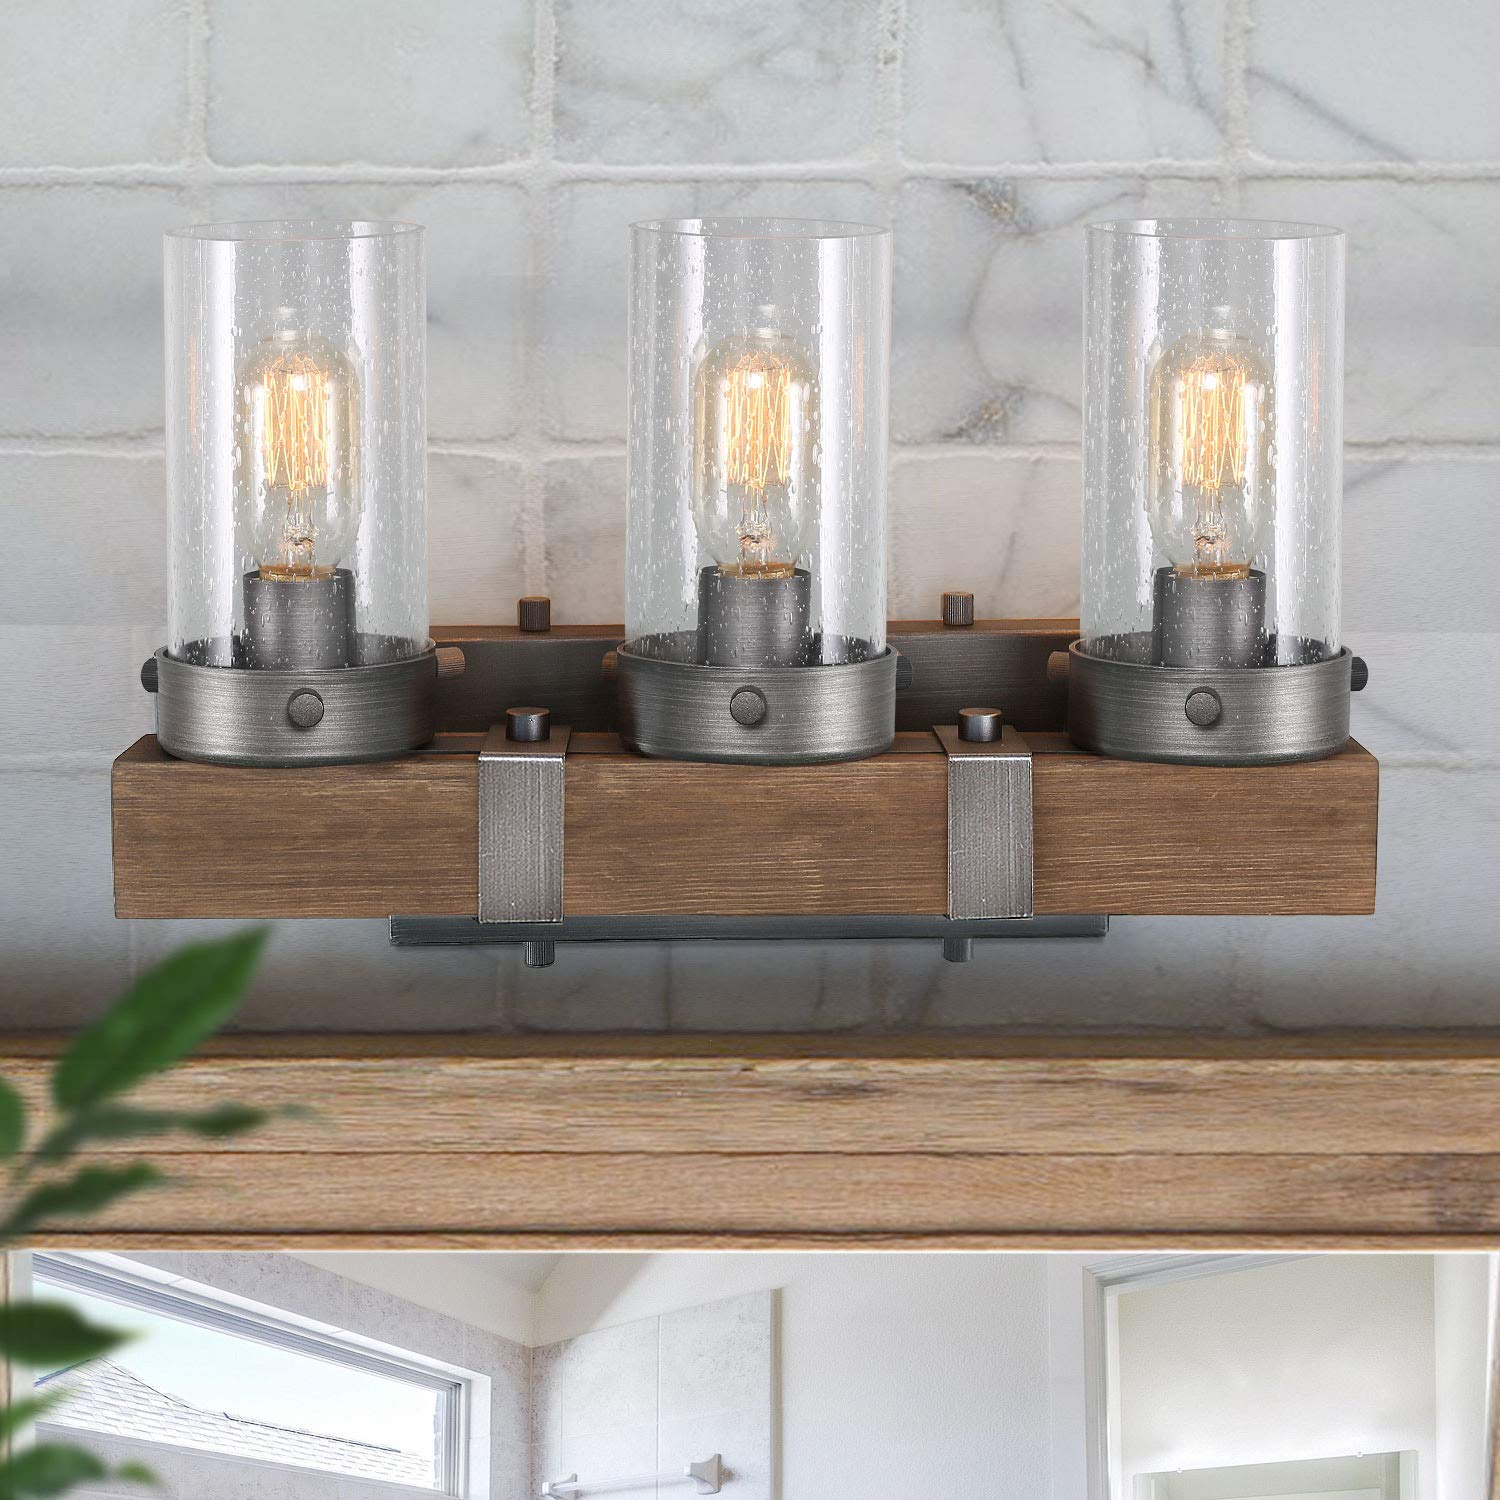 LOG BARN Bathroom Vanity Light, Farmhouse Lighting Fixture 3 Lights in Wood and Cylindrical Bubbled Glass